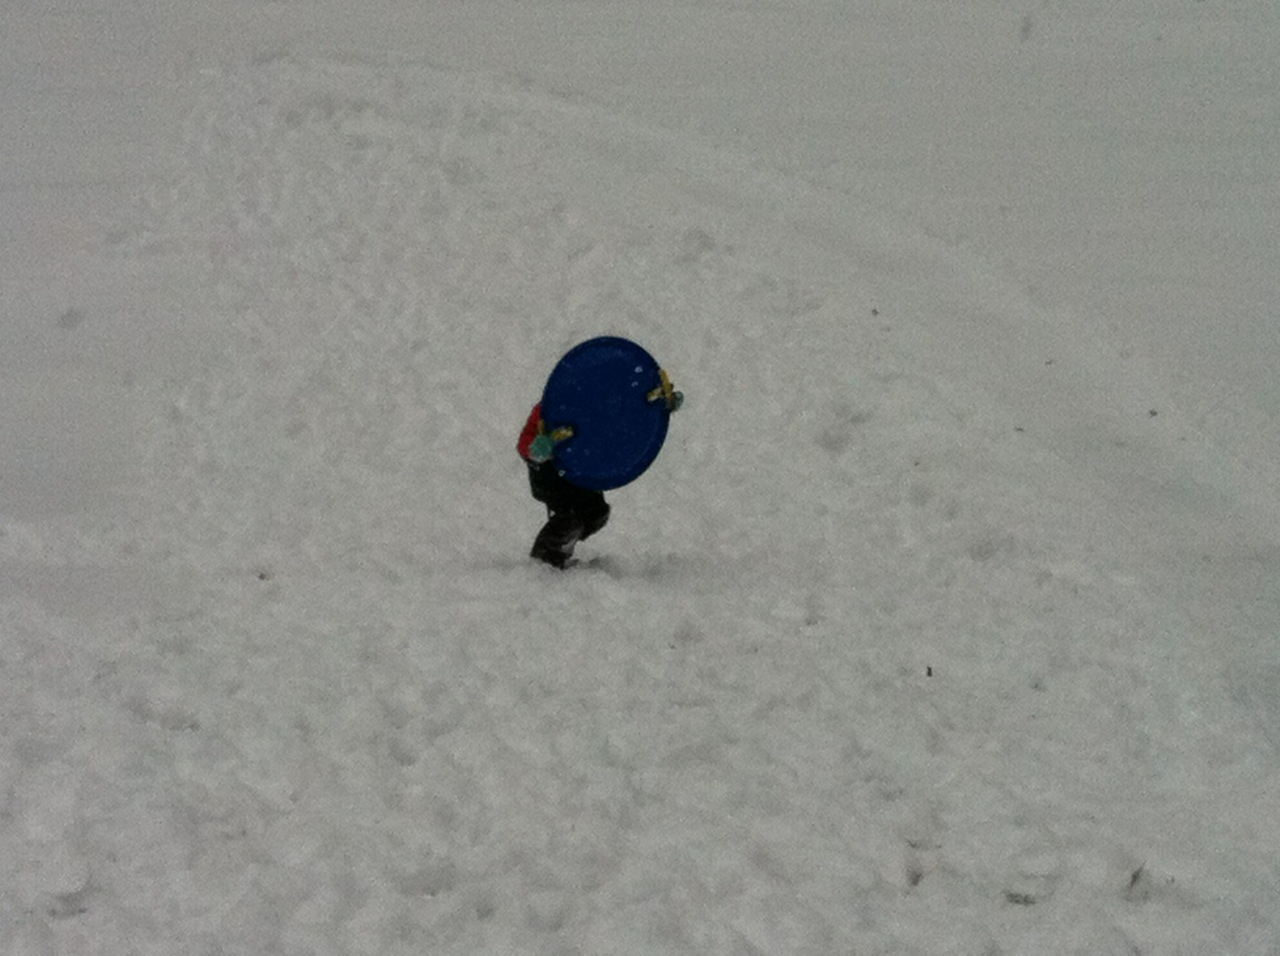 Josiah trying to carry his sled back up the hill